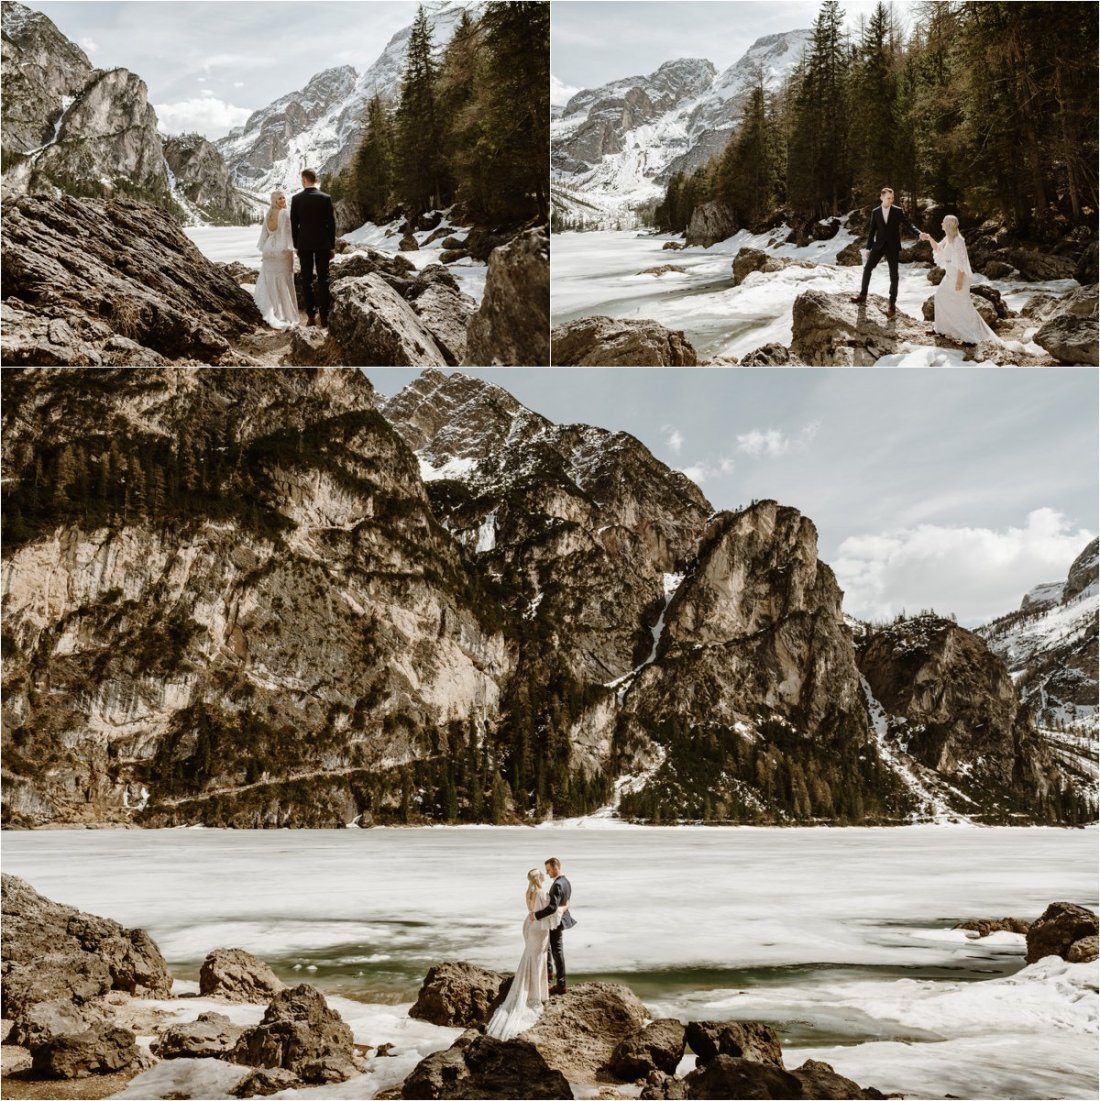 Erika & Nathan climb the rocks around the shores of Lago di Braies in the Dolomites. Elopement Photos by Wild Connections Photography